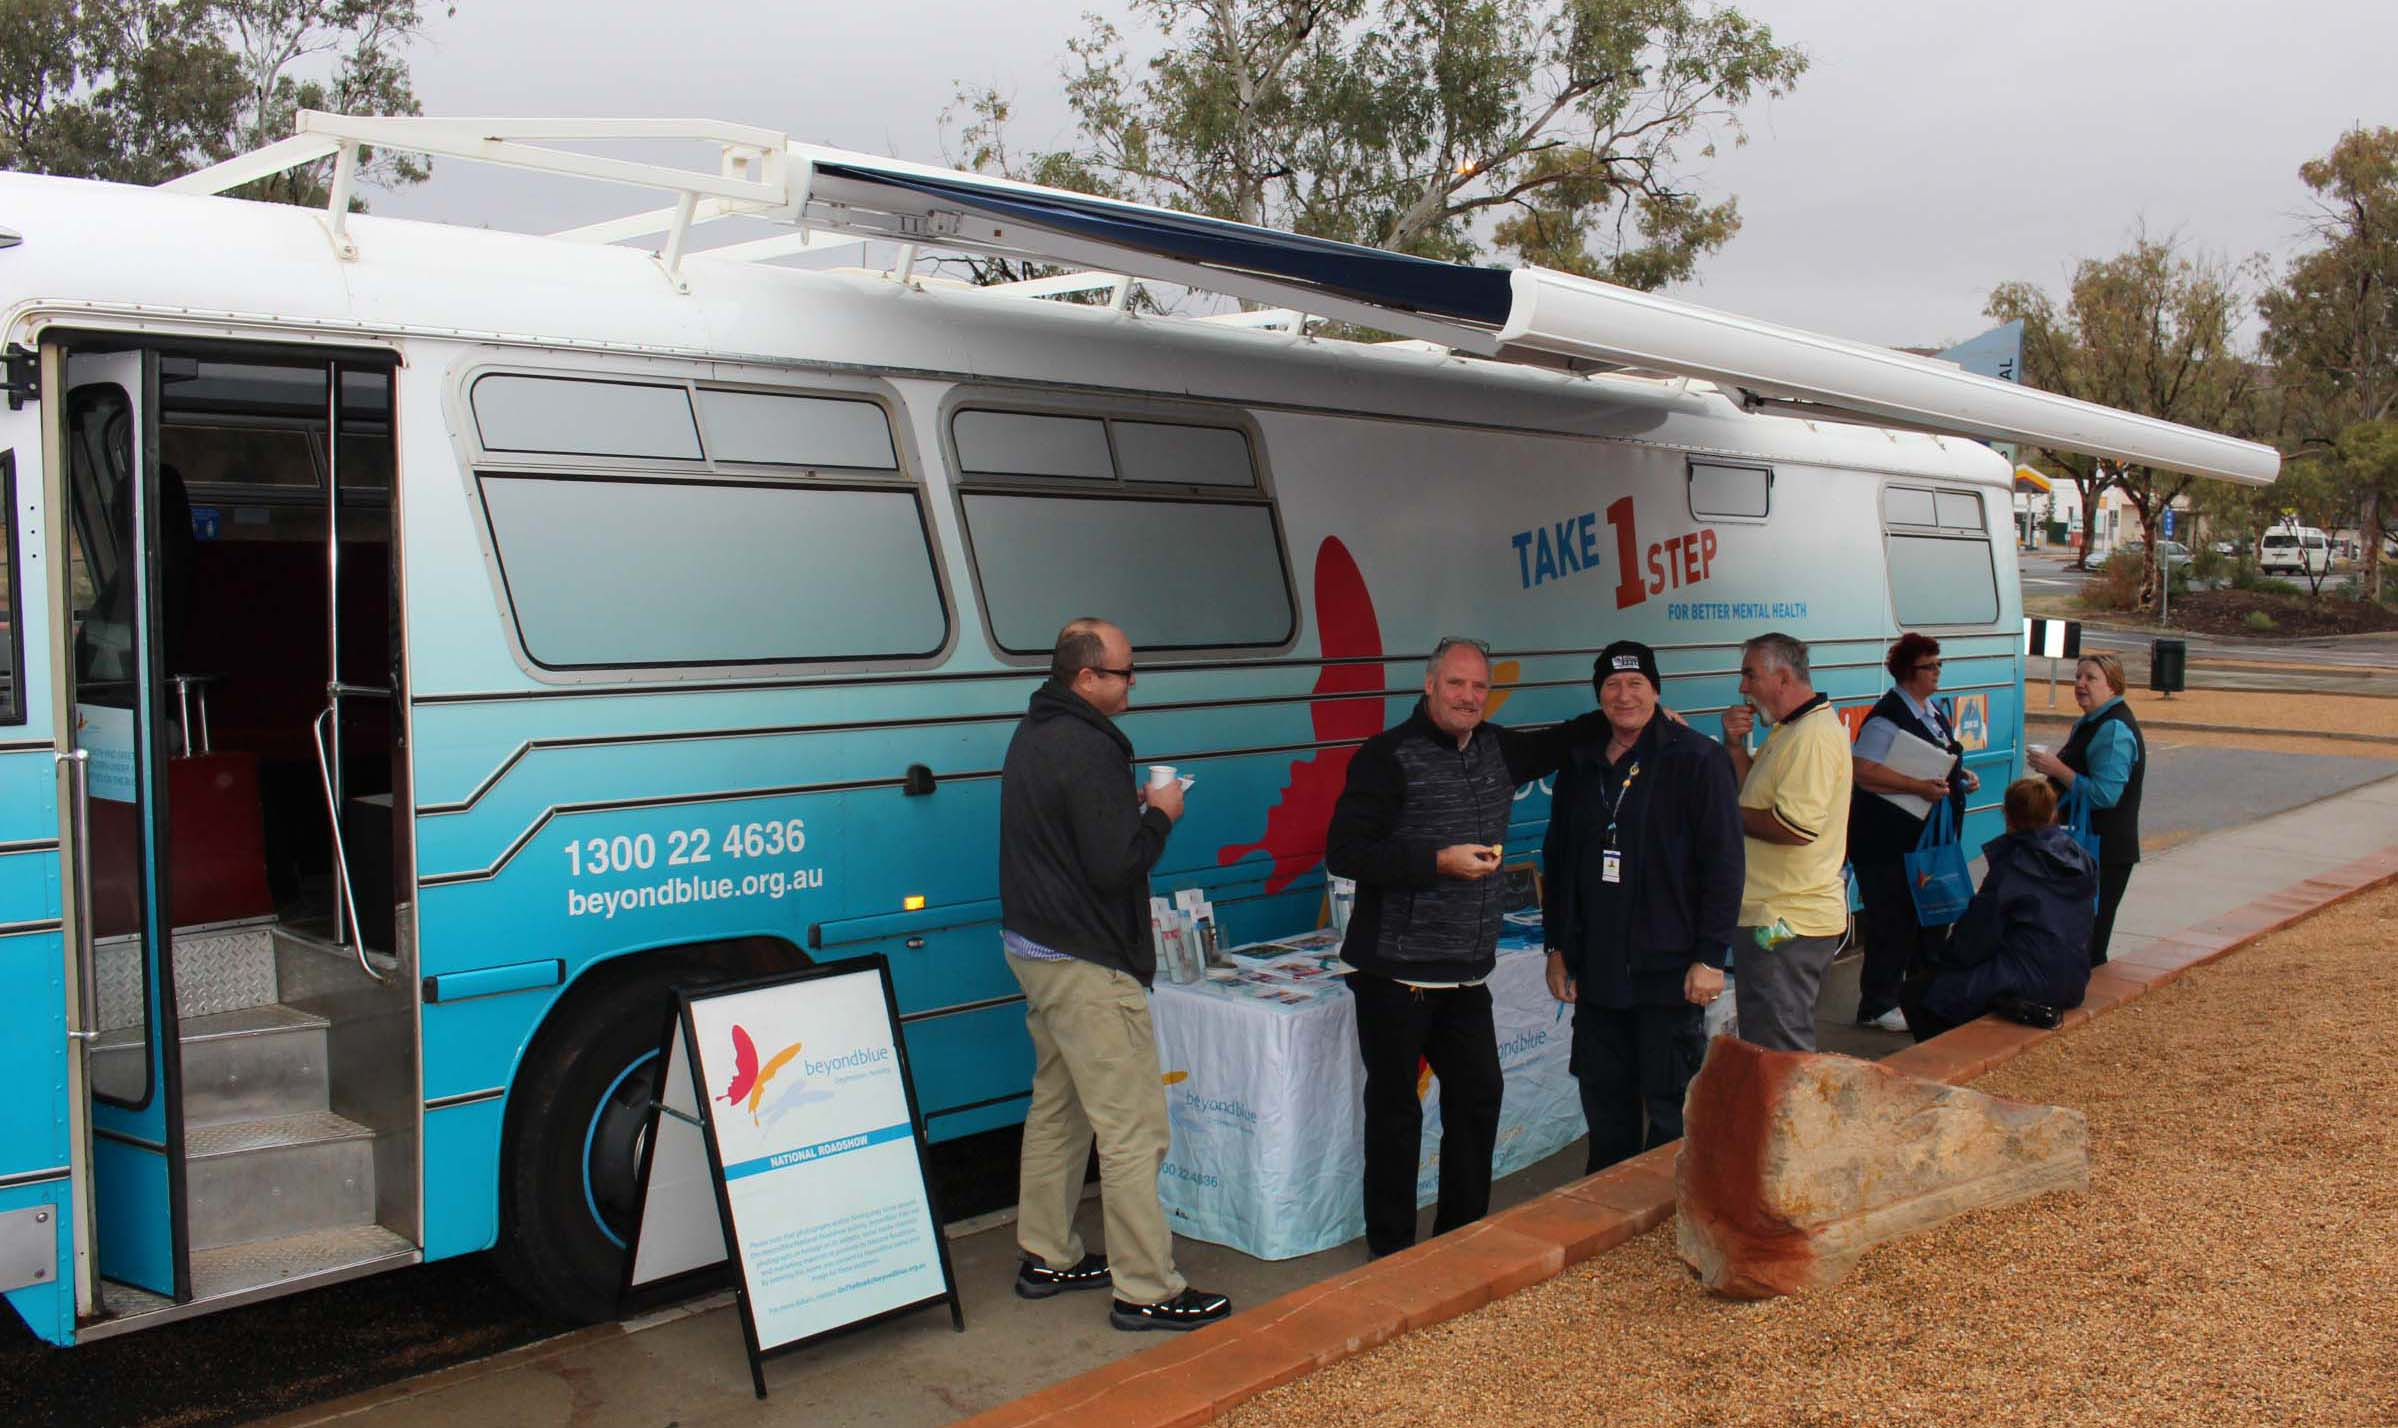 Staff, visitors and patients from Alice Springs Hospital popped out for a cup of tea and a chat.